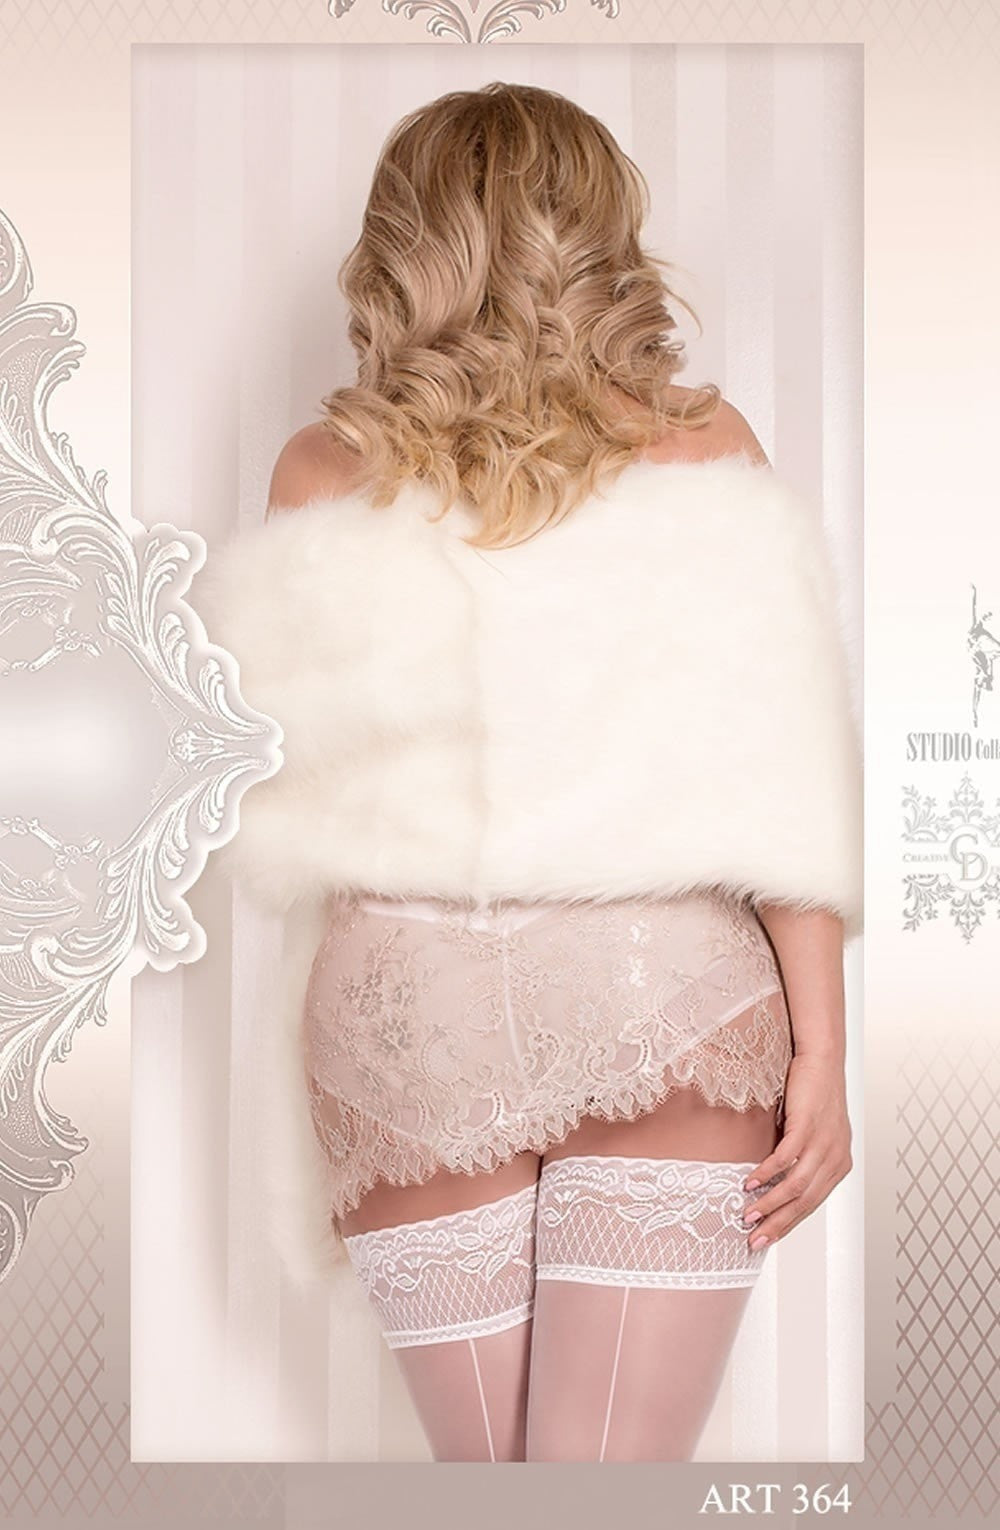 Ballerina Plus Size Hold Ups 364 (White) - Plus Size Hold Up Stockings - Ballerina - Charm and Lace Boutique